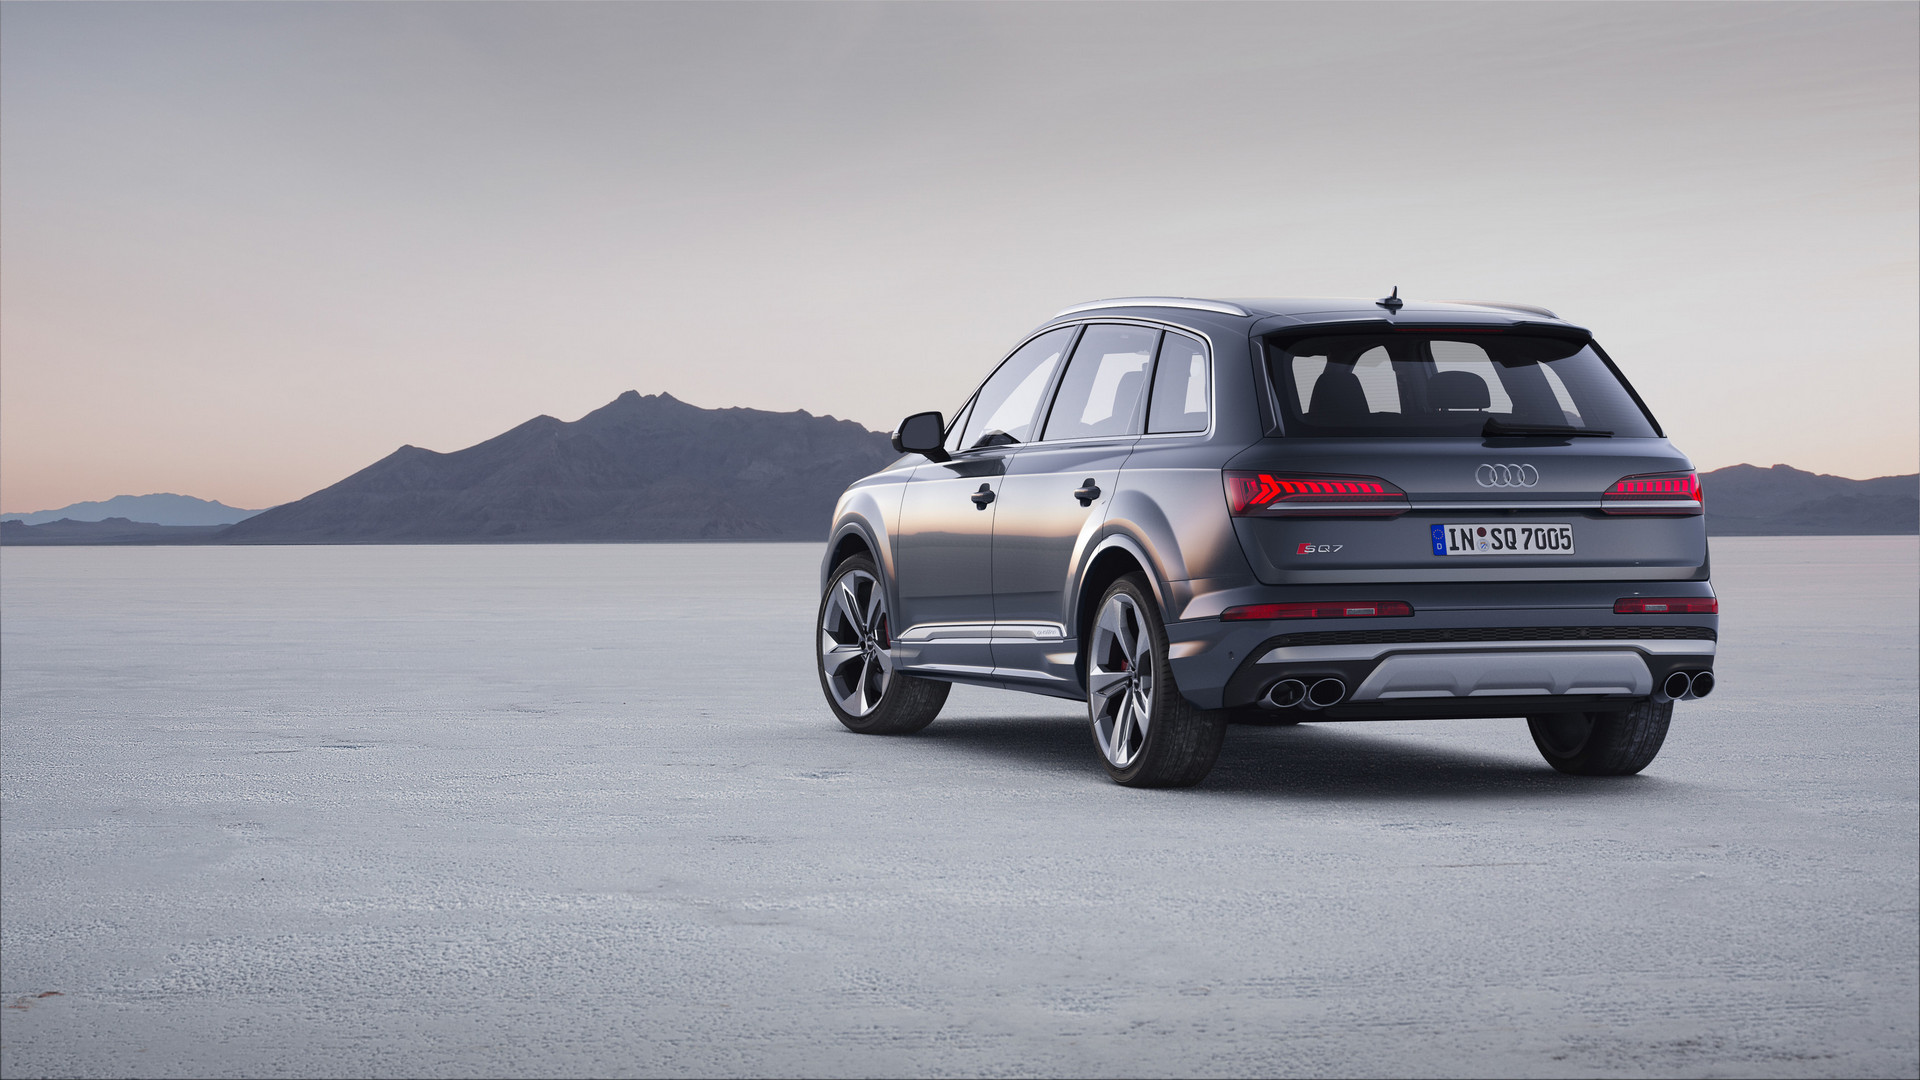 2020 Audi SQ7 TDI Rear Side View